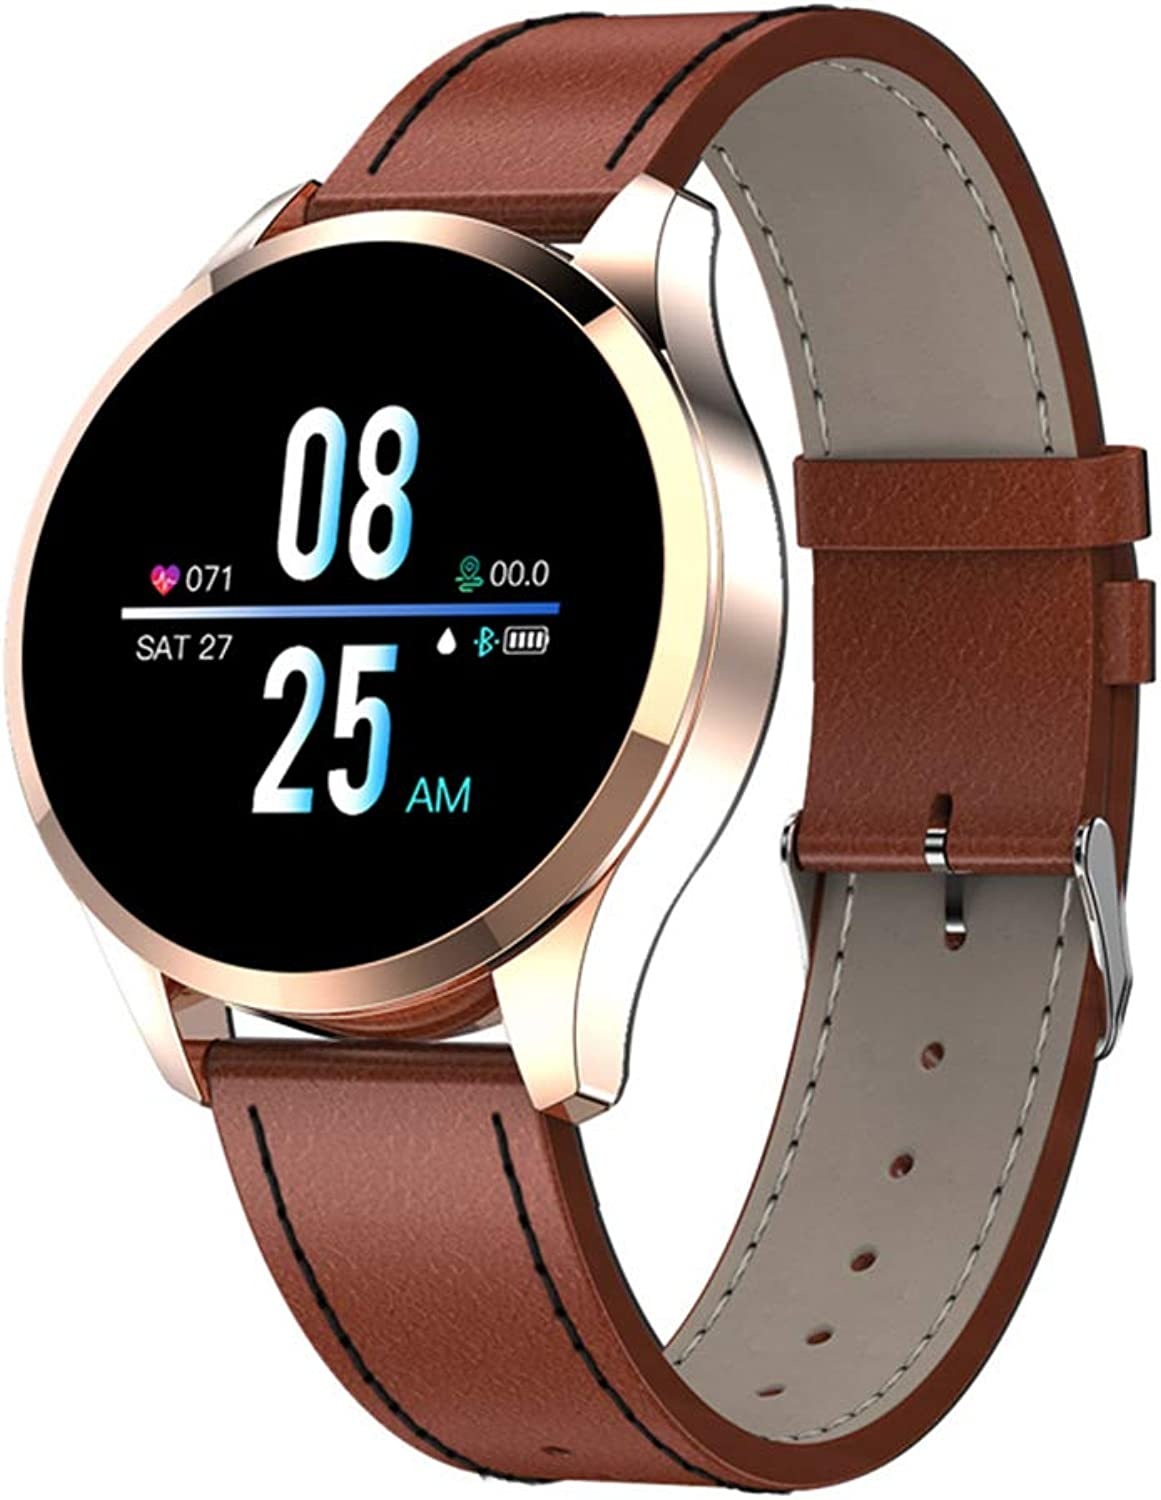 JingJingQi Fitness-TrackerQ9 Smart Watch Mnner Kamera Smart Watch wasserdichte Anruferinnerung RatenmonitorFitness Tracker Smartwatch Android IOS